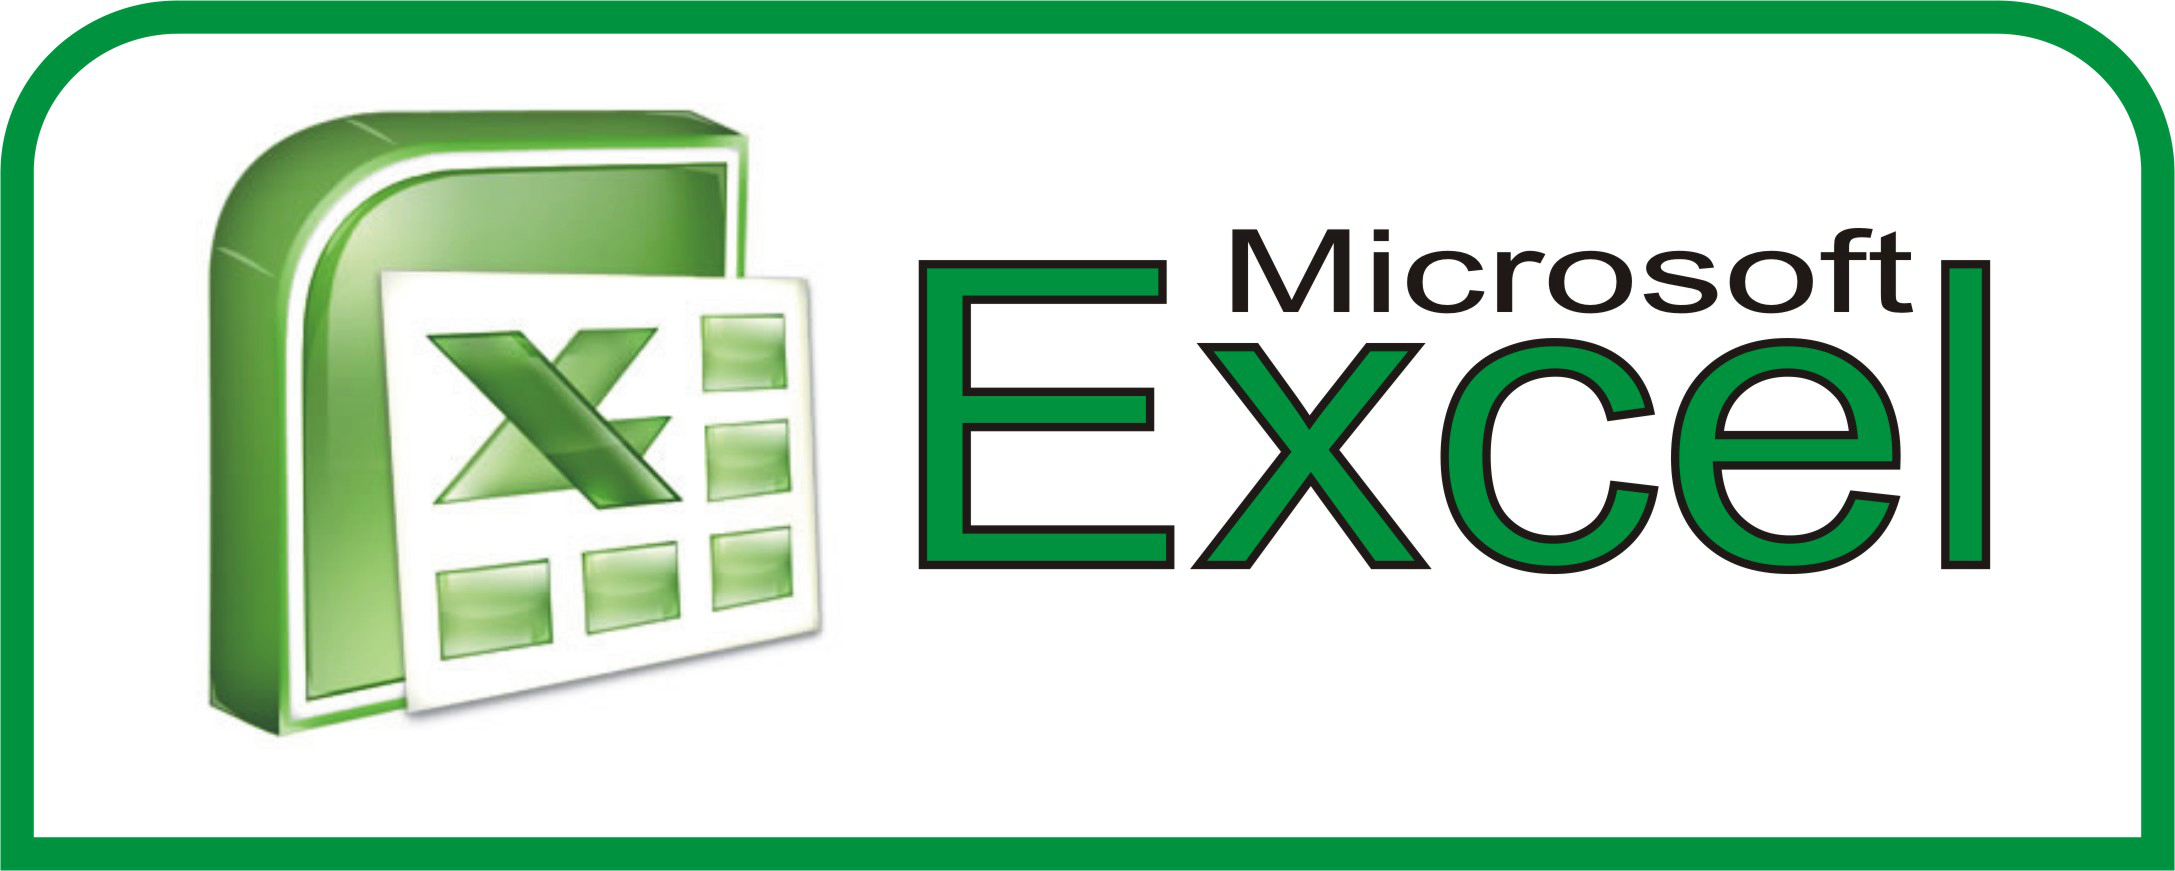 Ediblewildsus  Fascinating  Excel Shortcuts You Probably Didnt Know About  Techdissected With Fair Cost Benefit Analysis Excel Template Besides How To Calculate A Column In Excel Furthermore Decrypt Excel File With Lovely Excel Text To Numbers Also Deselect Excel In Addition Think Cell Excel And Excel Samples As Well As Excel Table Template Additionally Excel Nslookup From Techdissectedcom With Ediblewildsus  Fair  Excel Shortcuts You Probably Didnt Know About  Techdissected With Lovely Cost Benefit Analysis Excel Template Besides How To Calculate A Column In Excel Furthermore Decrypt Excel File And Fascinating Excel Text To Numbers Also Deselect Excel In Addition Think Cell Excel From Techdissectedcom